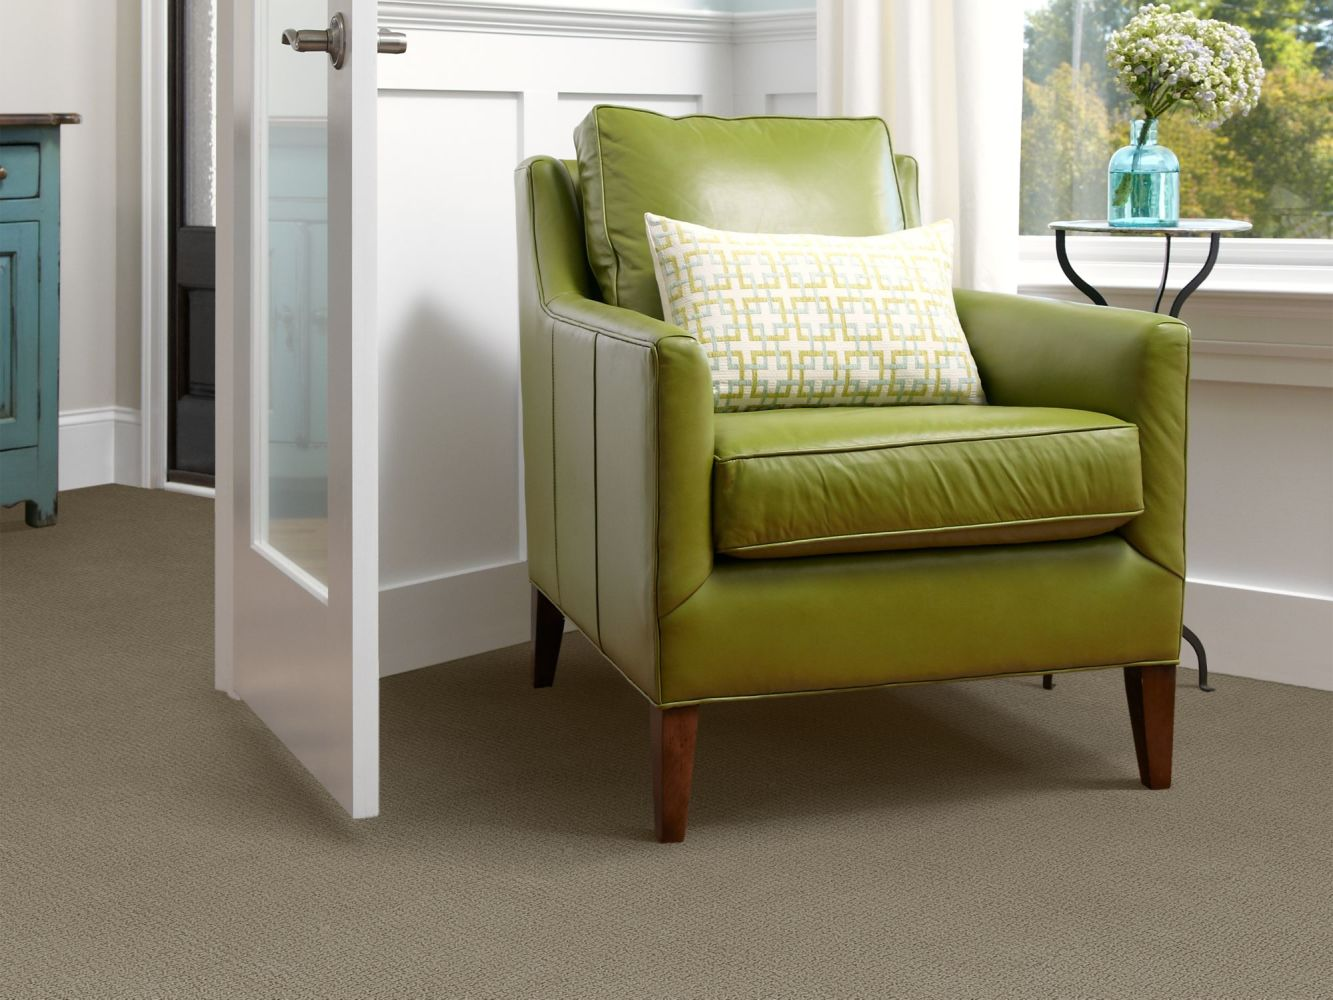 Shaw Floors Home Foundations Gold Blackwater Bay Boutique 00184_HGP77